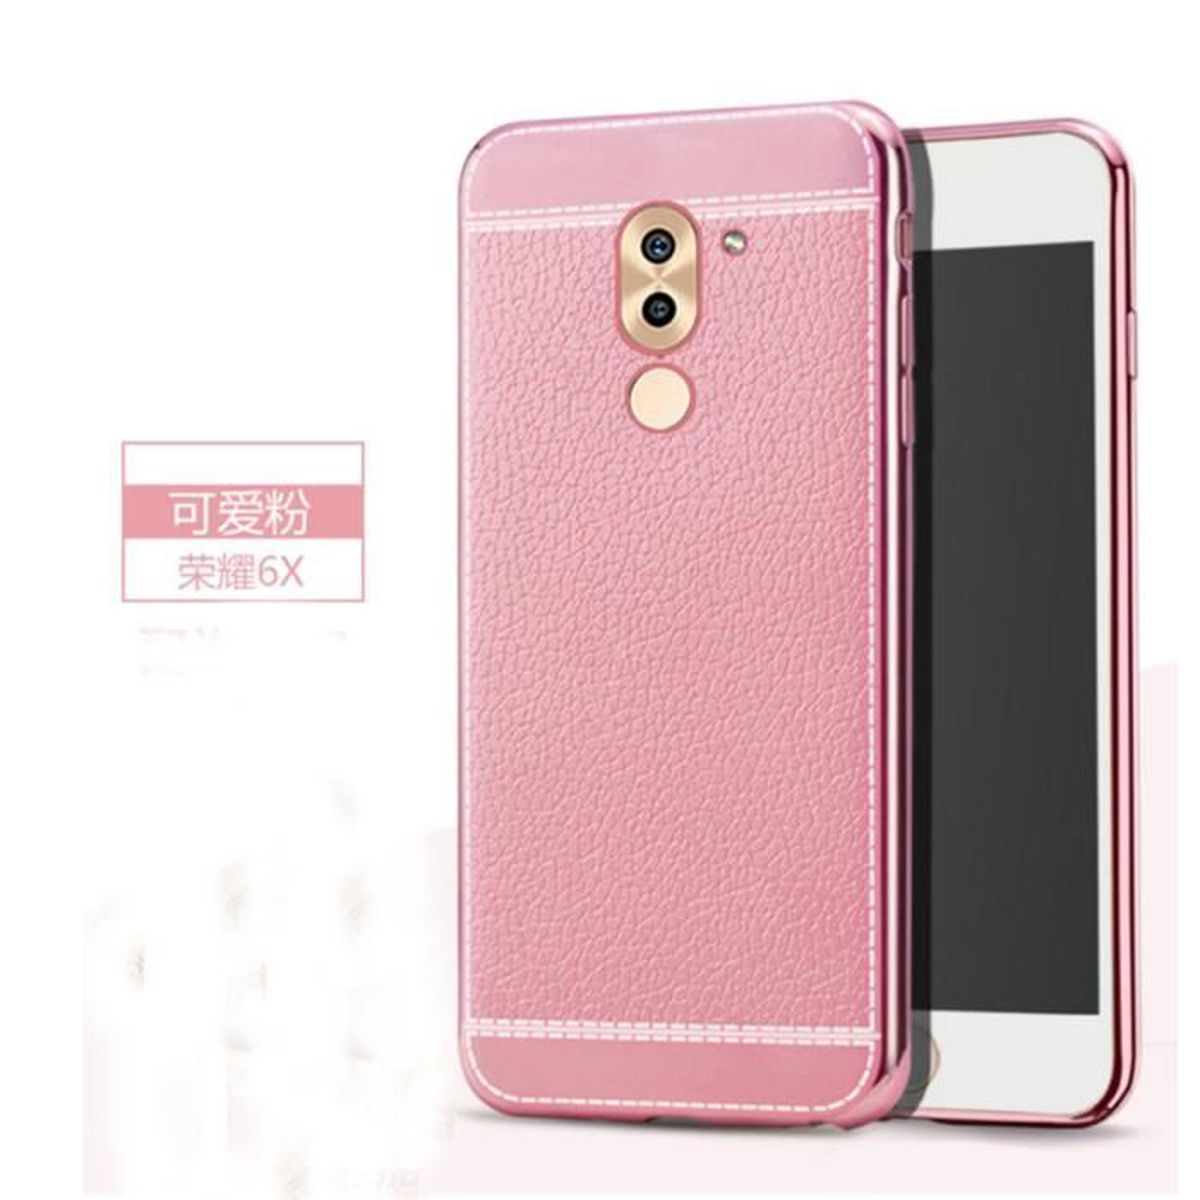 Coque housse huawei honor 6x 2016 rose motif cuir for Housse honor 6x